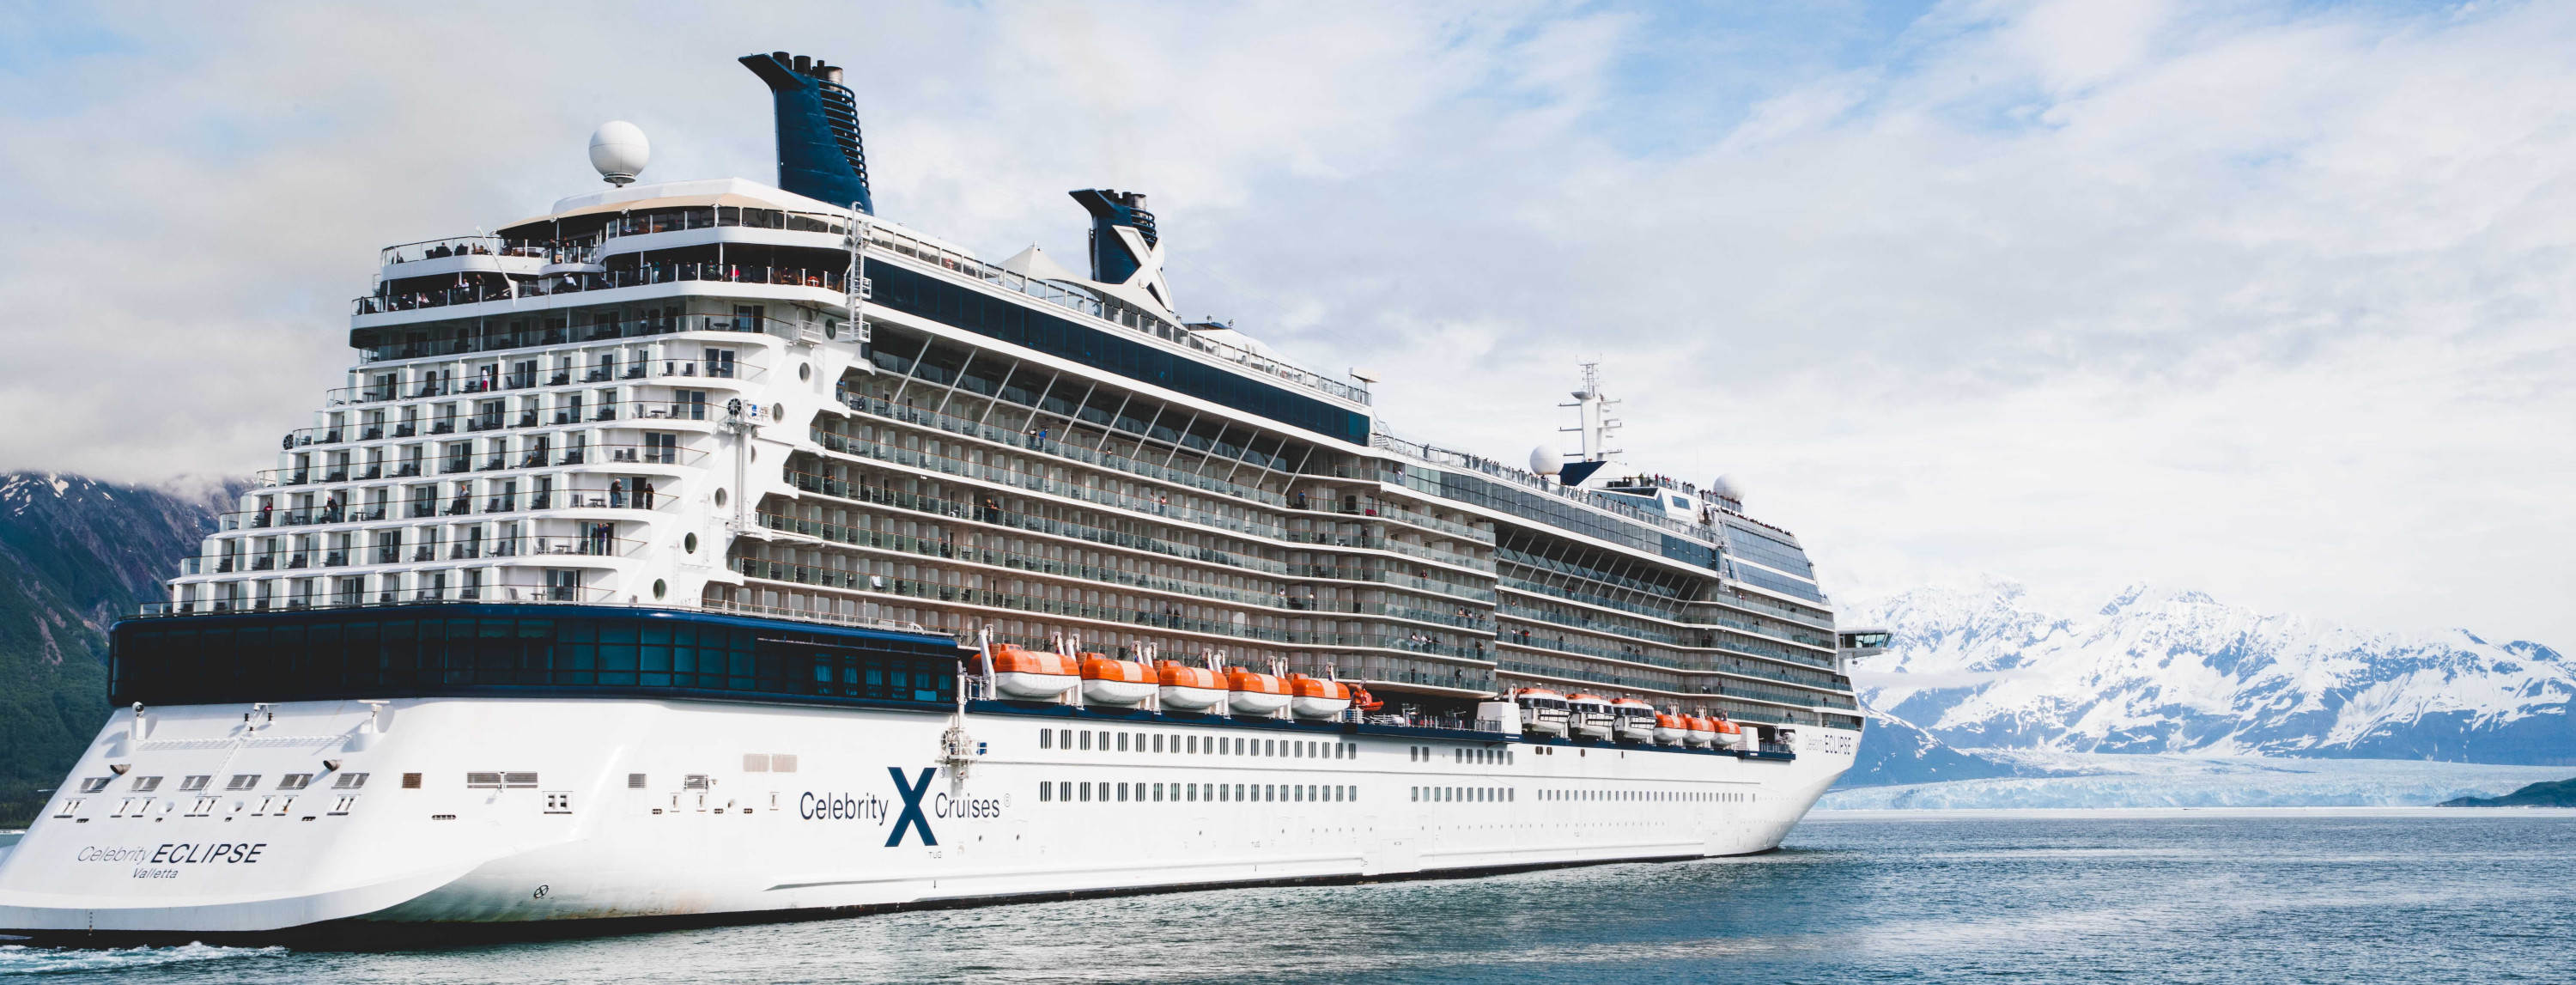 Spain & France Cruise on Celebrity Eclipse